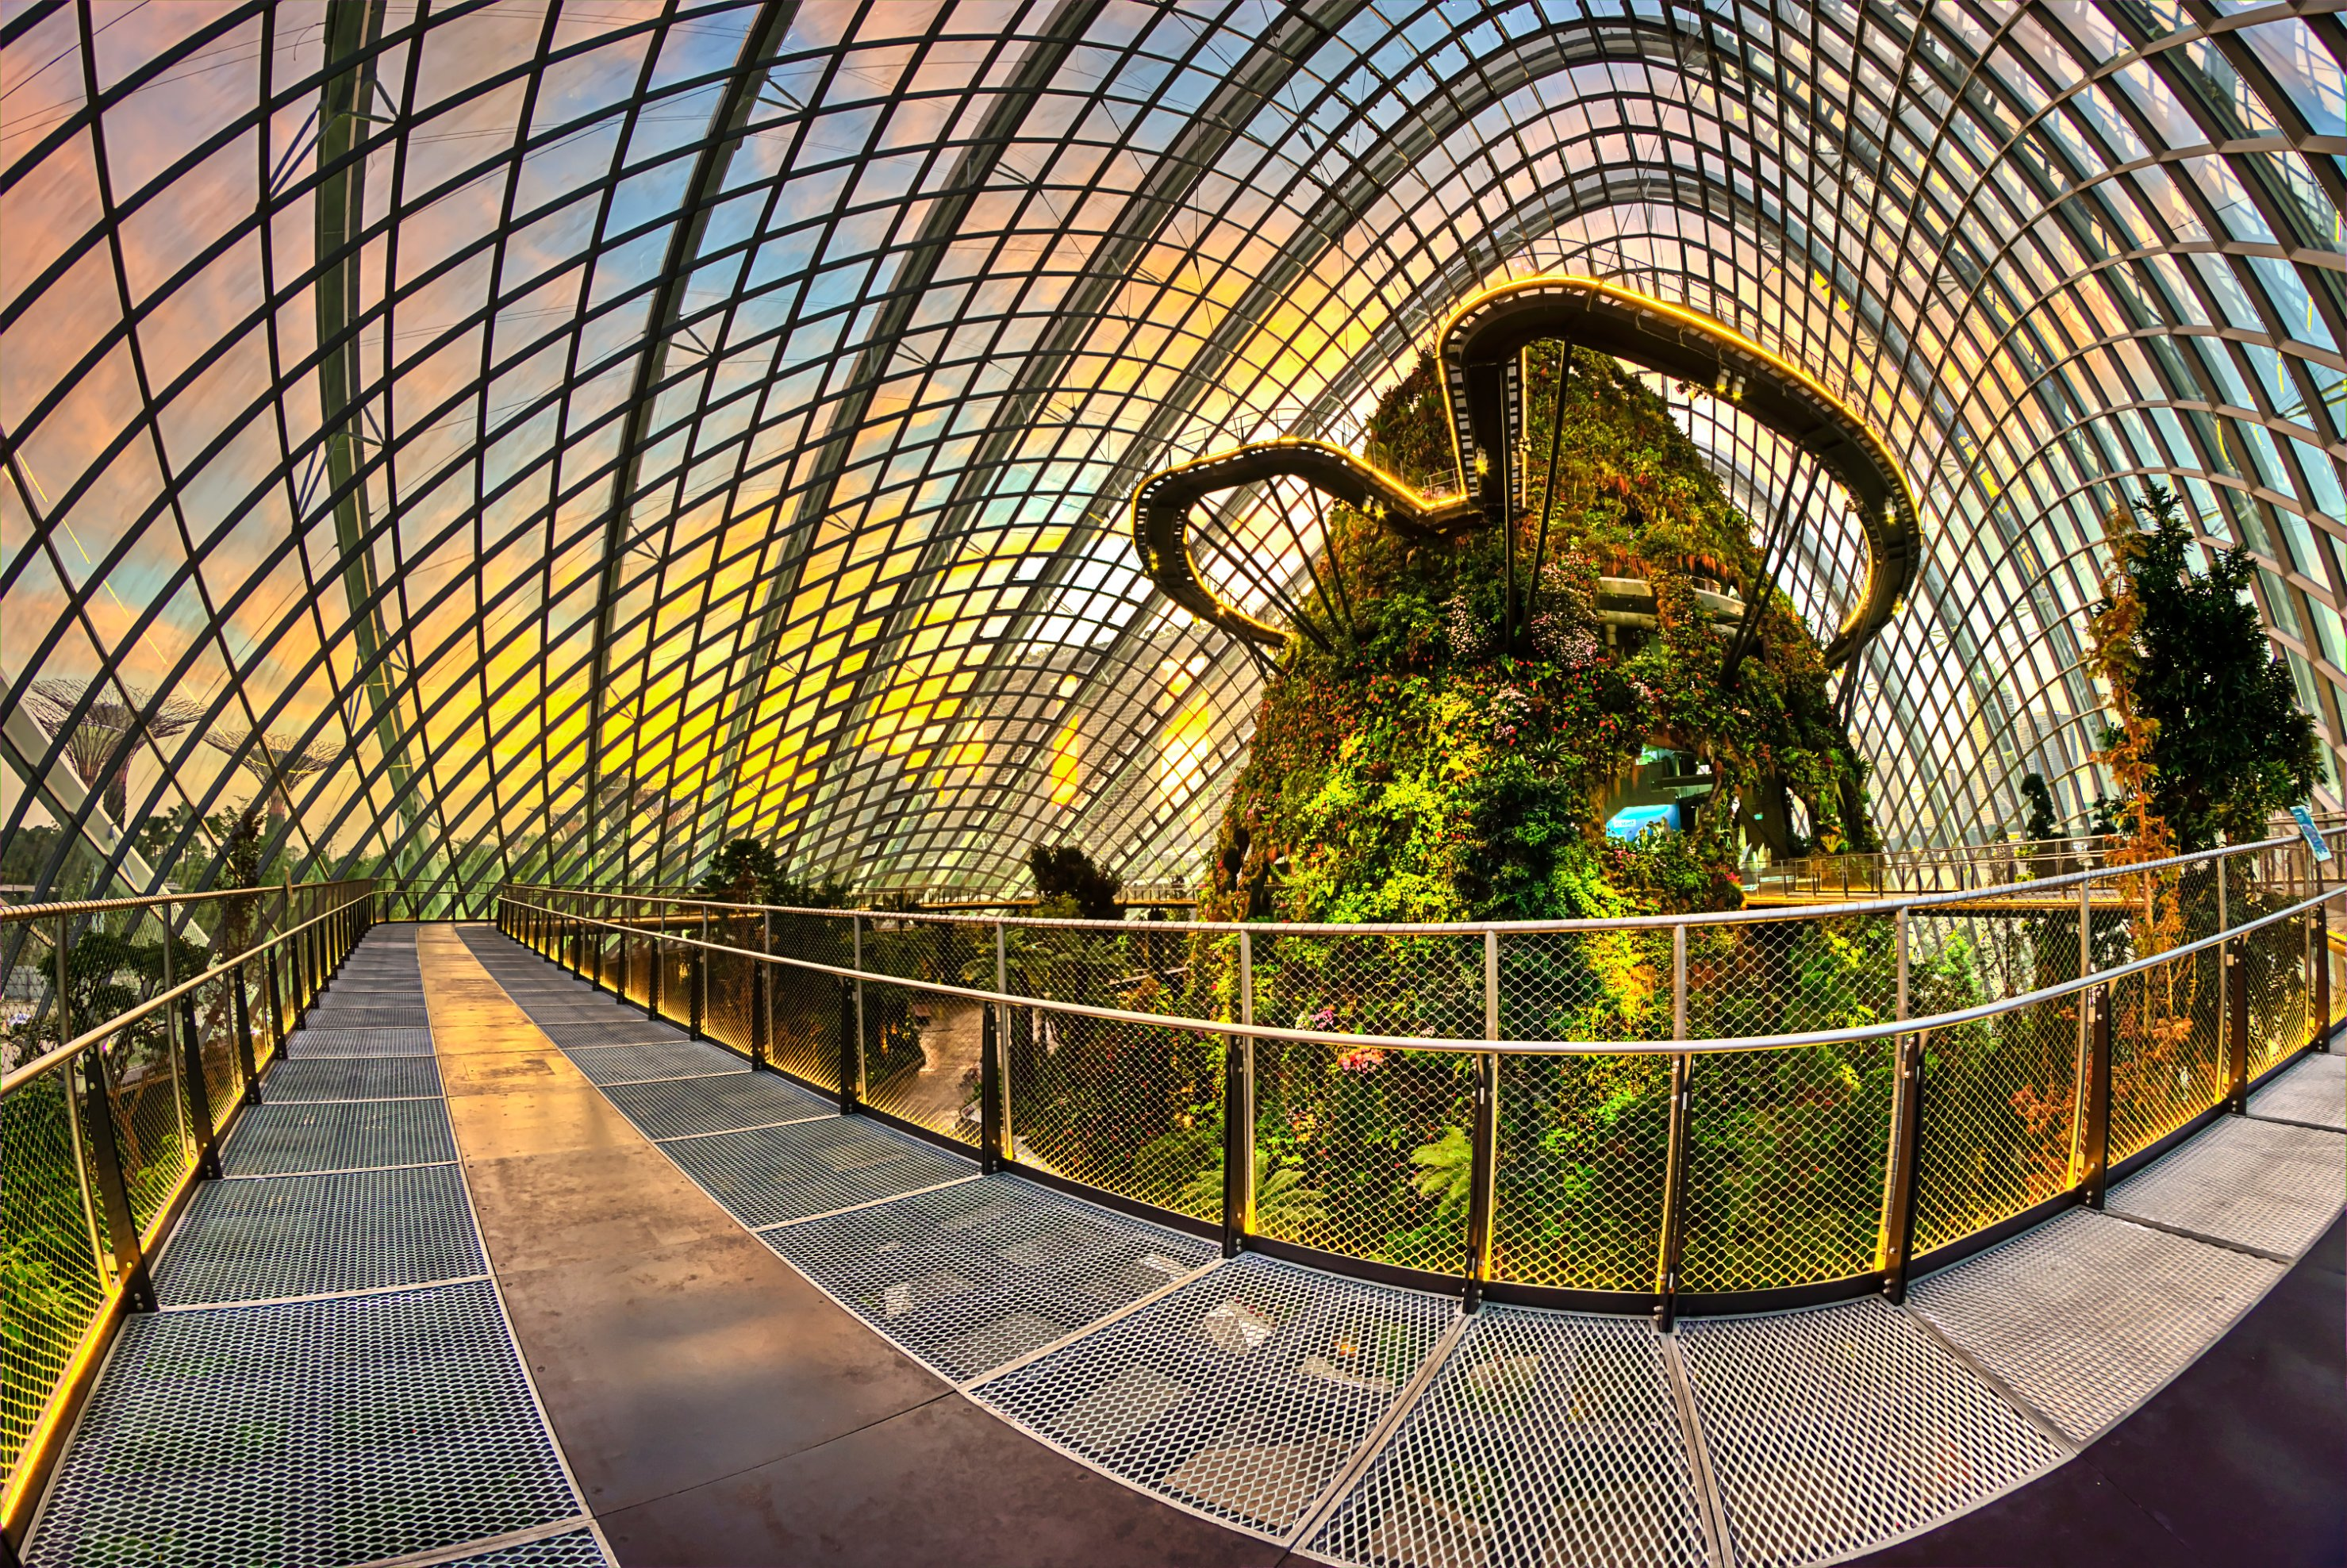 50 reasons Singapore is the best city in the world | CNN Travel